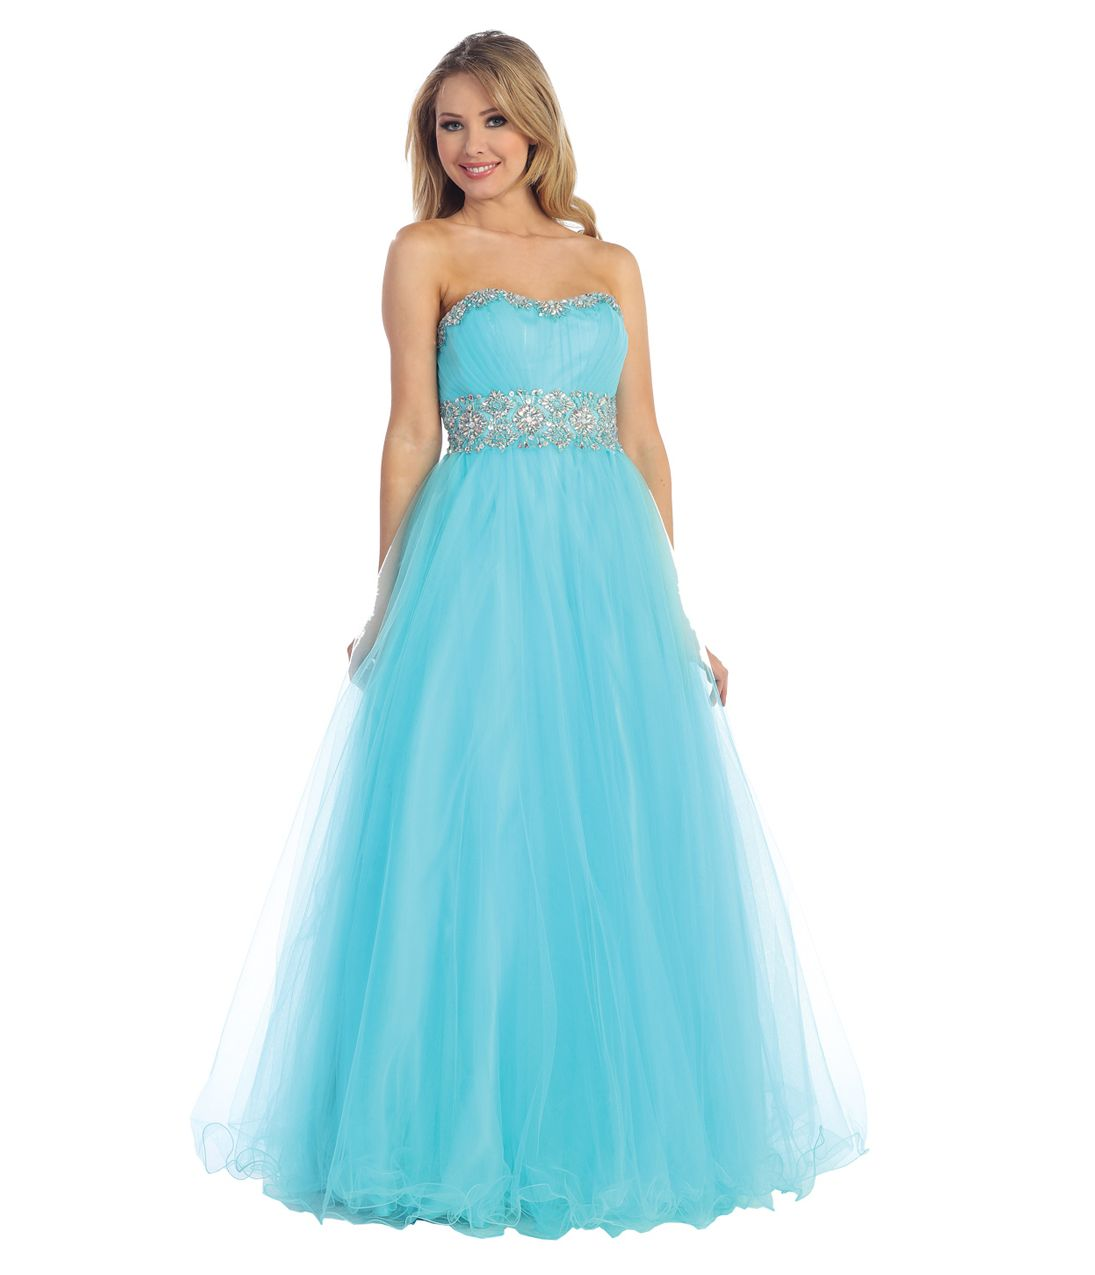 Unique Vintage | Strapless prom dresses, Vintage prom and Prom